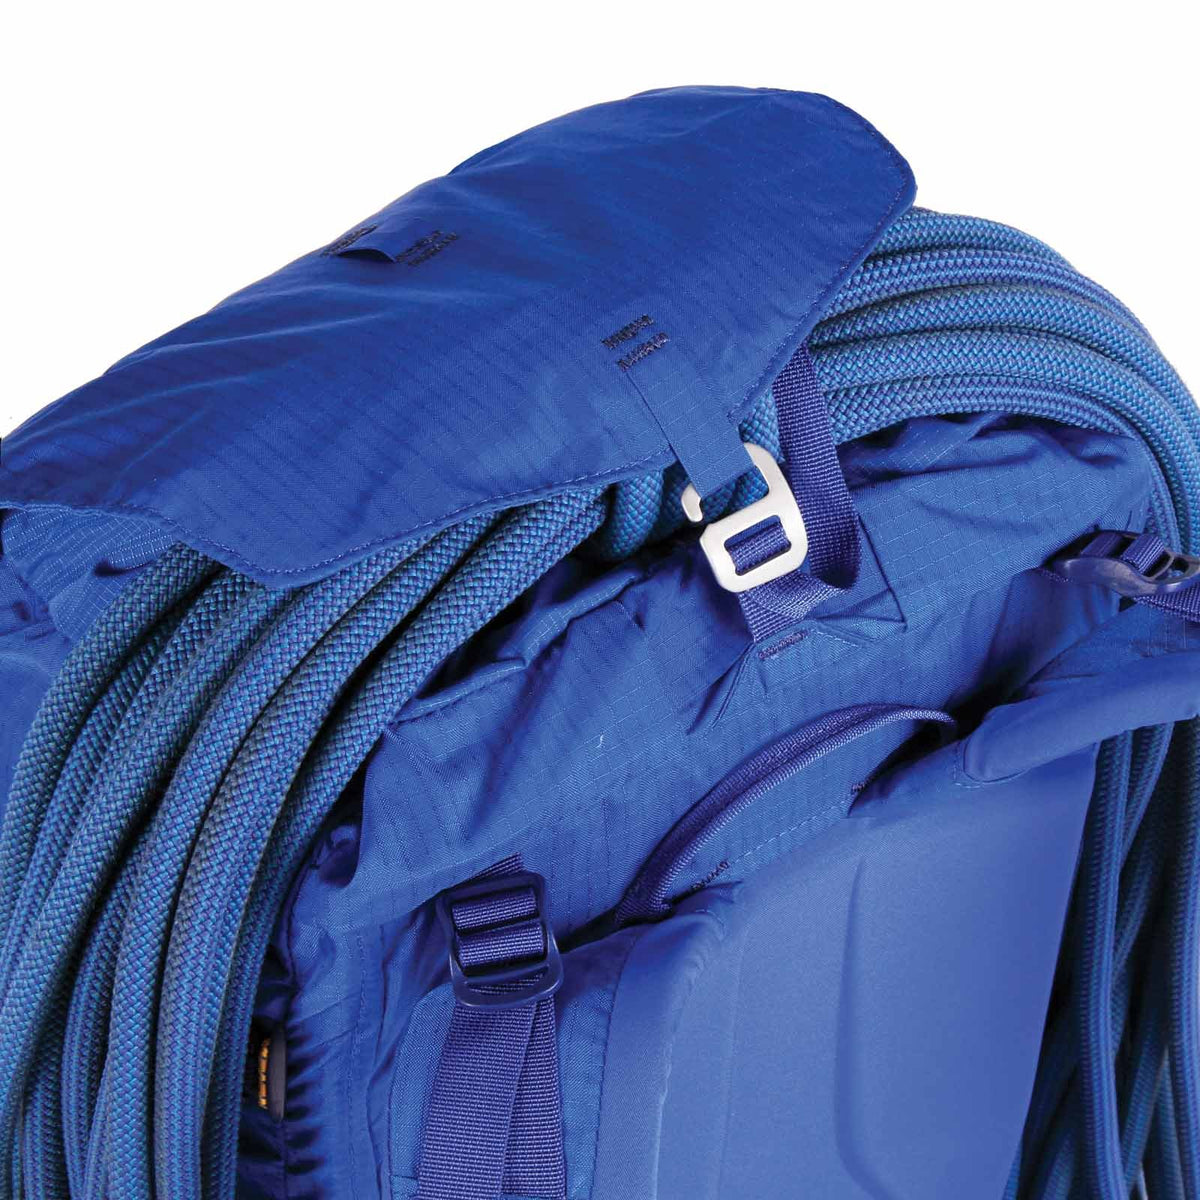 Blue Ice Warthog 30L rucksack, side view showing rope attached